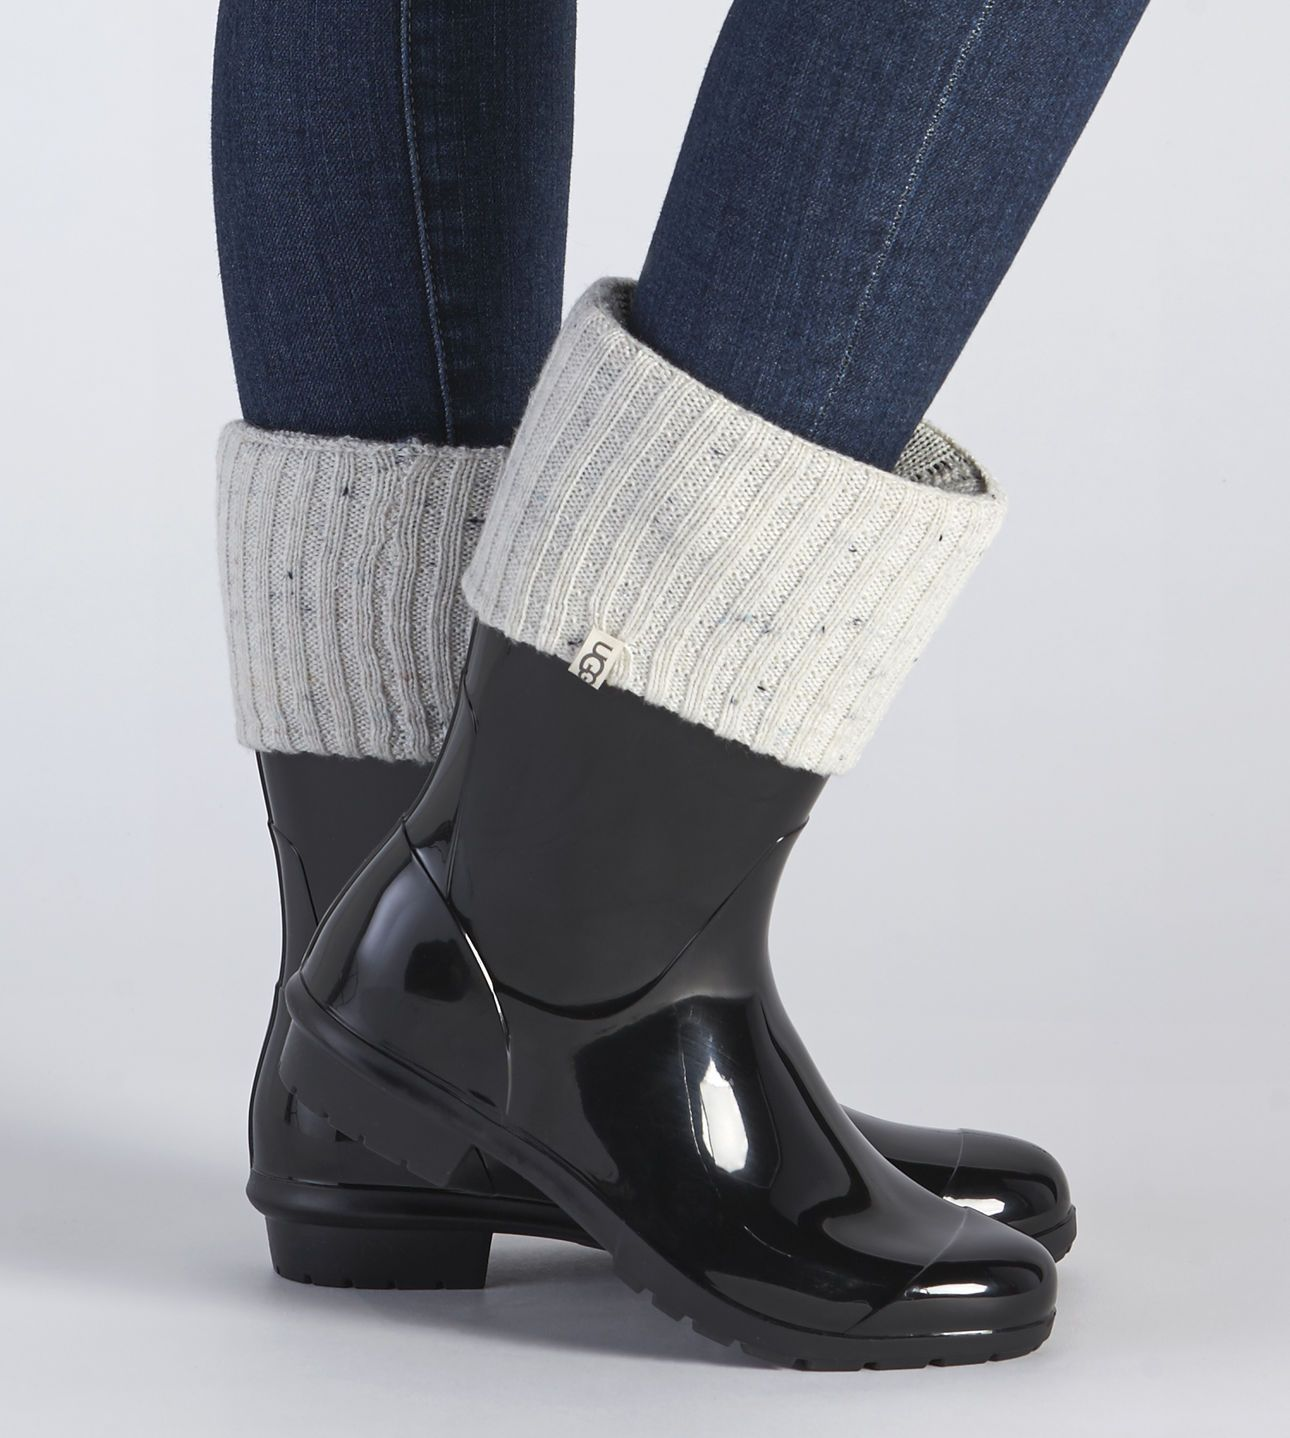 ea8e5f4af3e Women's Share this product Sienna Short Rainboot Sock in 2019 | Cold ...